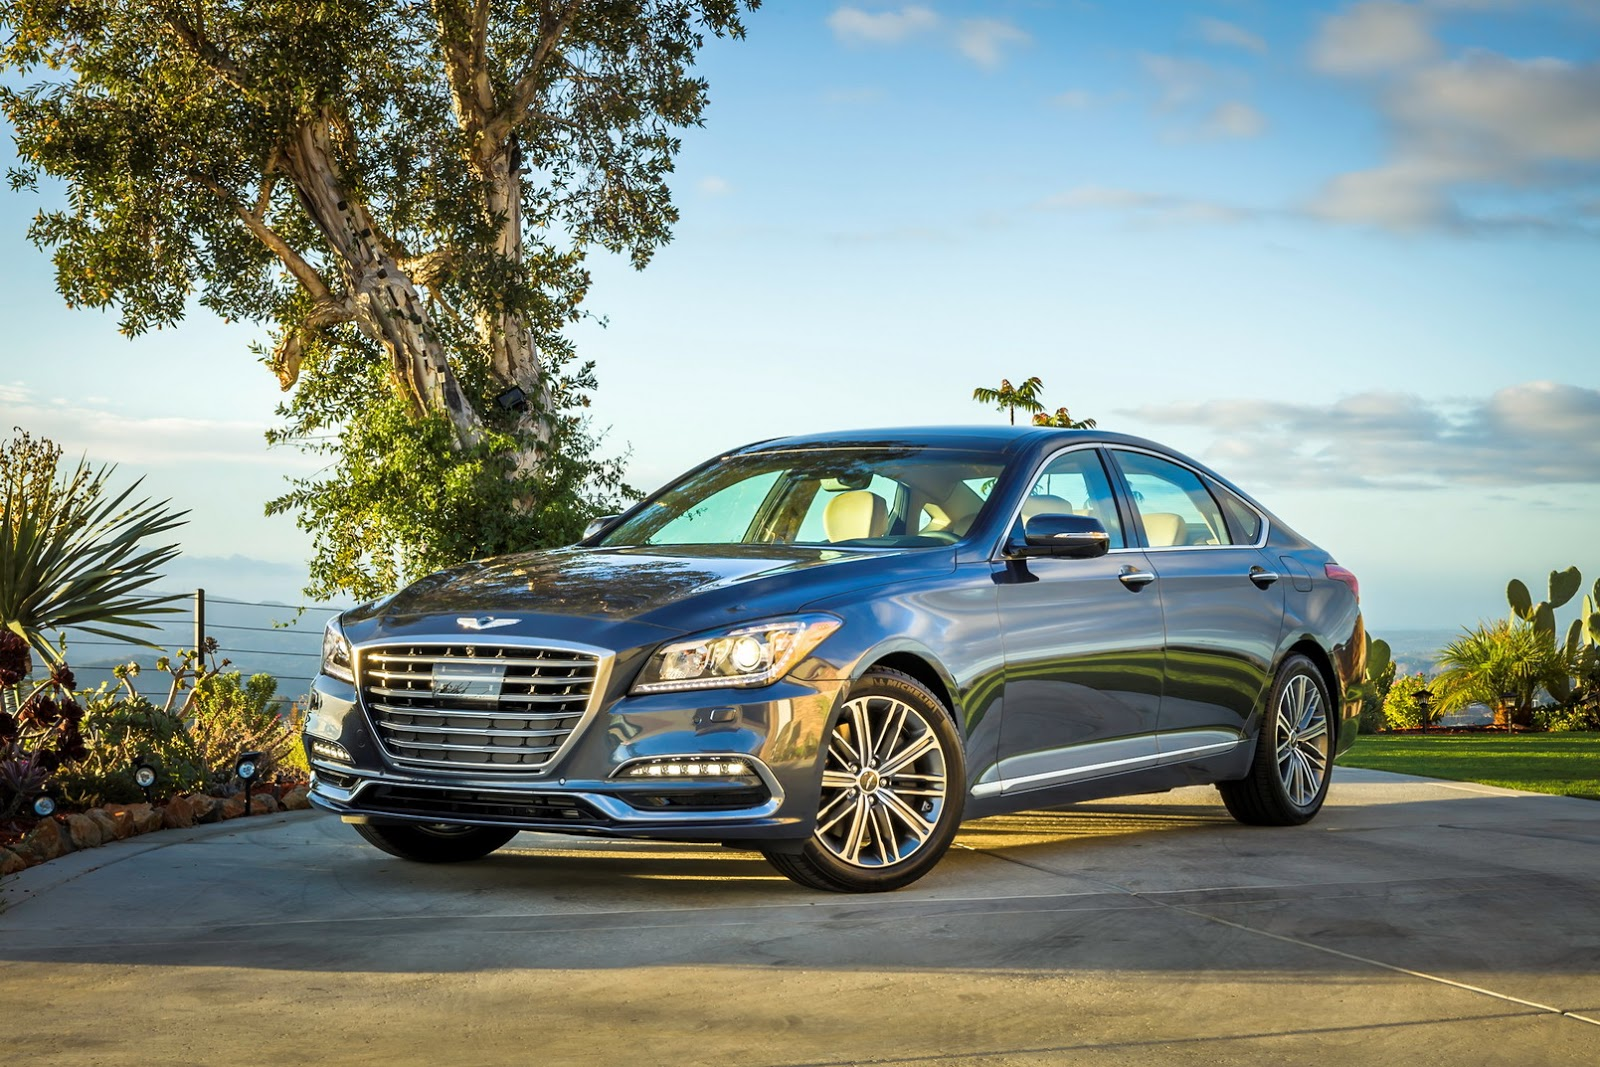 2018 genesis g80 sport priced from 55 250 autoevolution. Black Bedroom Furniture Sets. Home Design Ideas